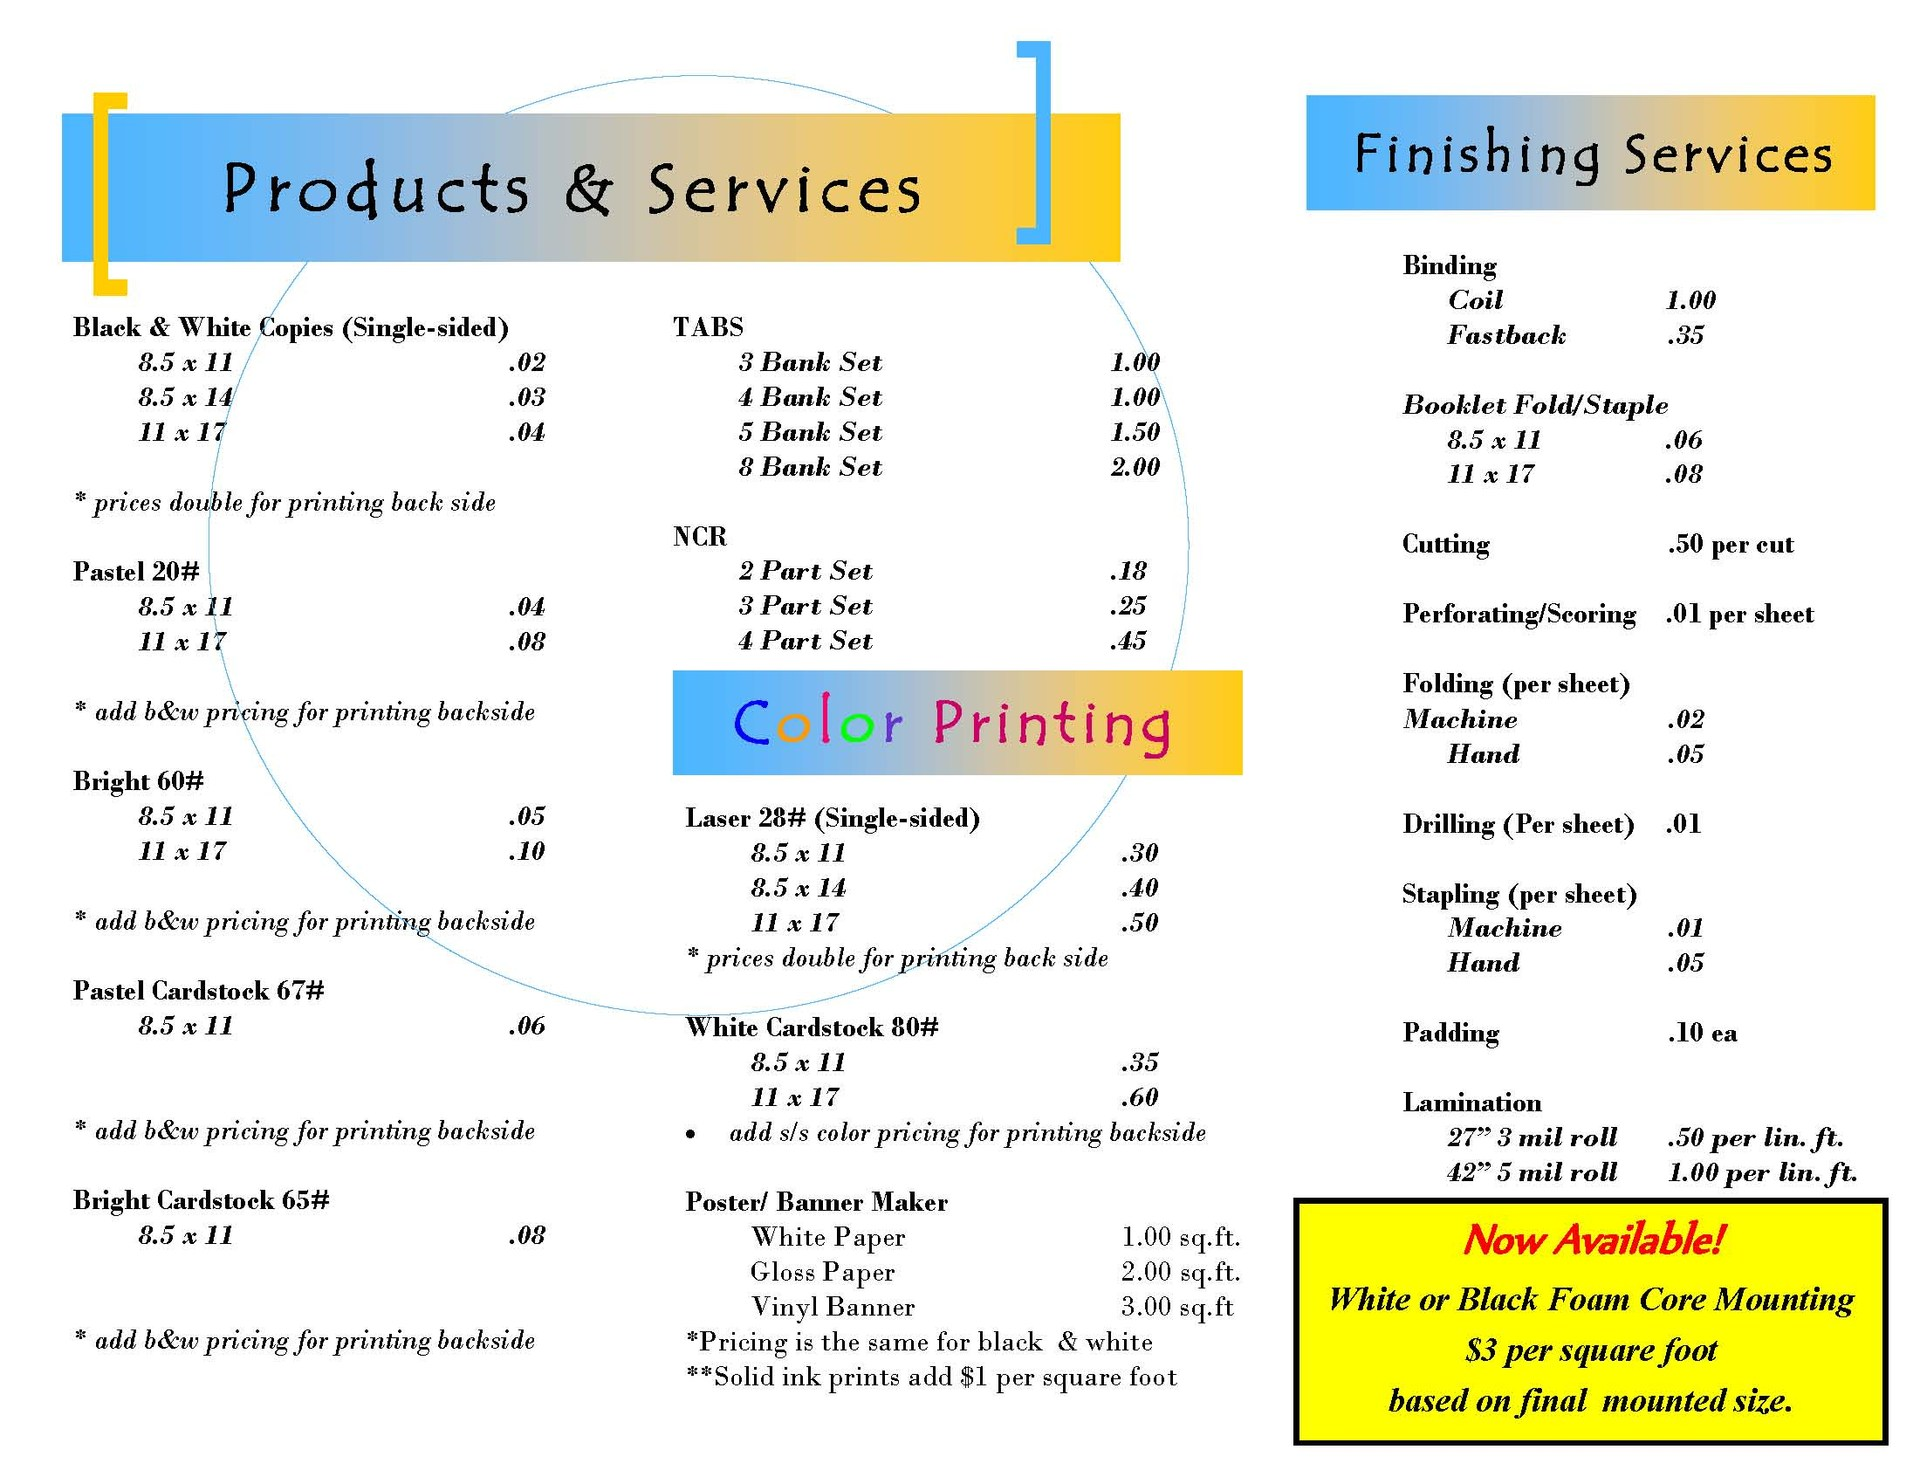 Products & Services list